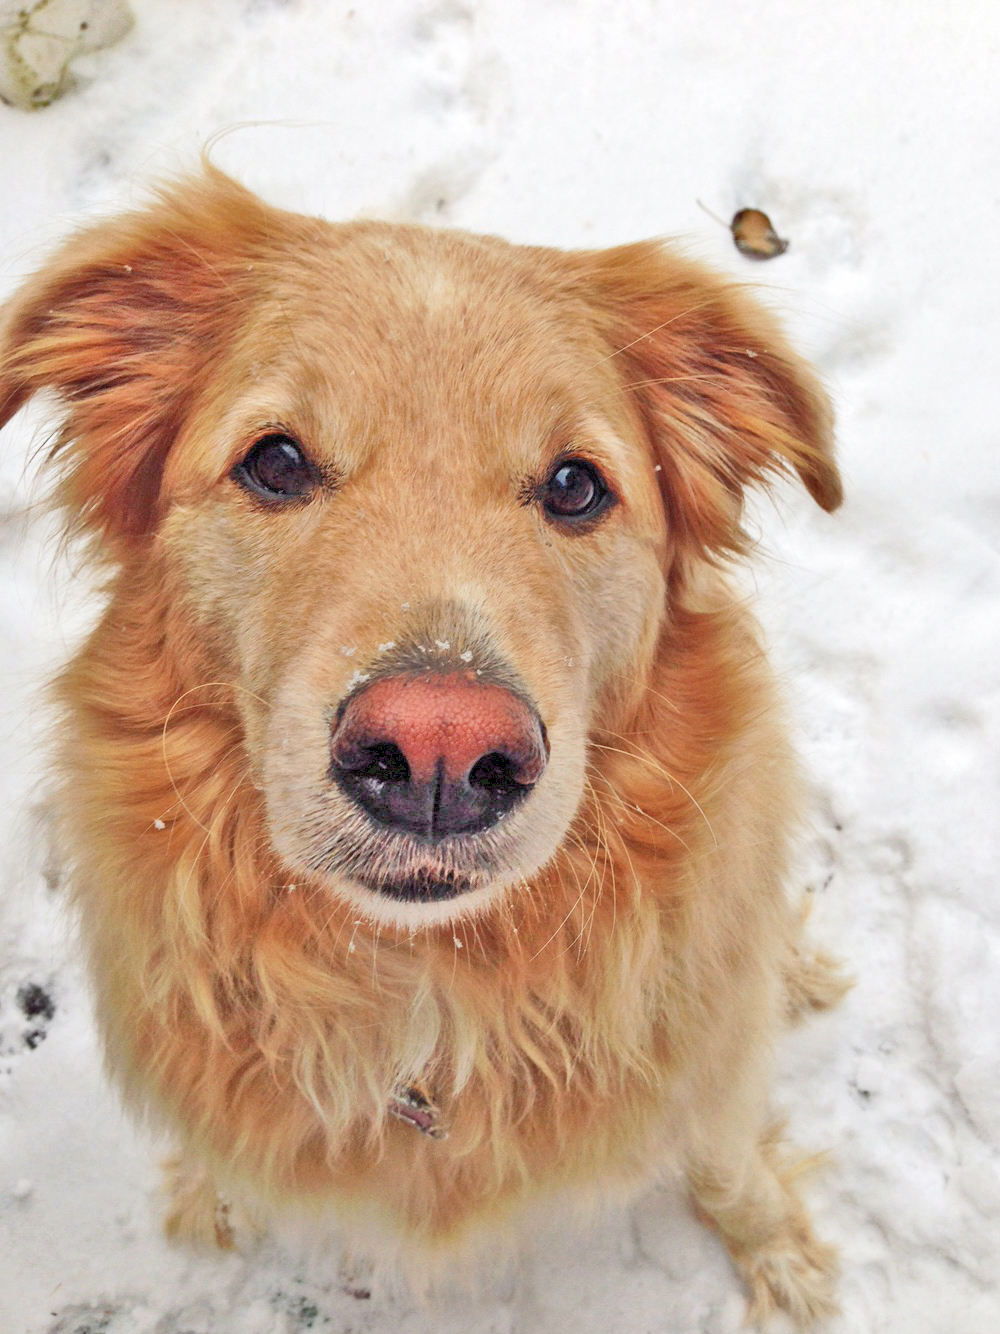 Daisy    is a six-year-old Golden Lab mix with a calm, gentle, and oh so loving nature. And snow. She loves the snow!